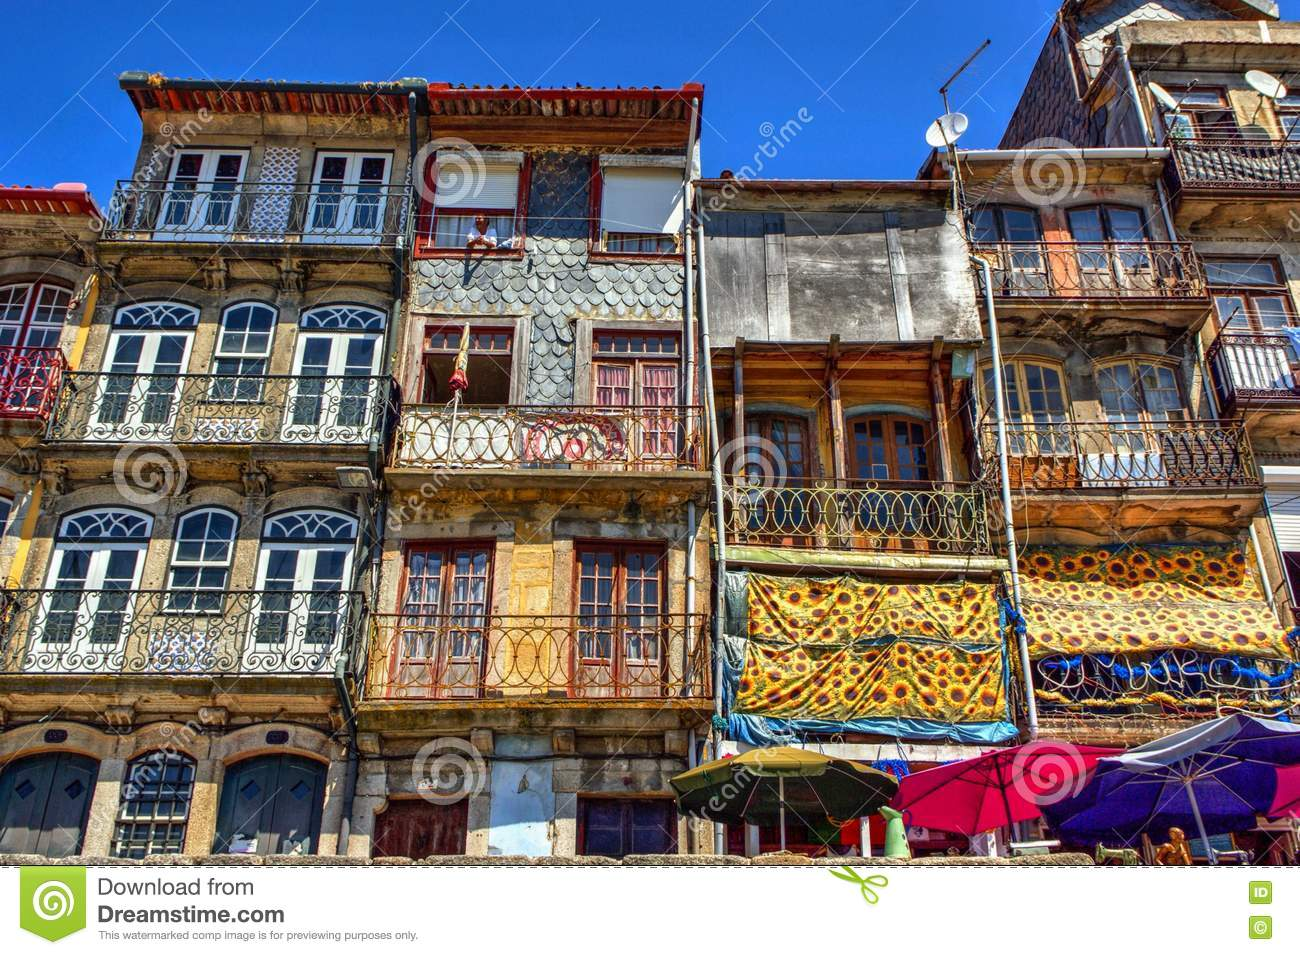 Typical and colorful houses of Ribeira